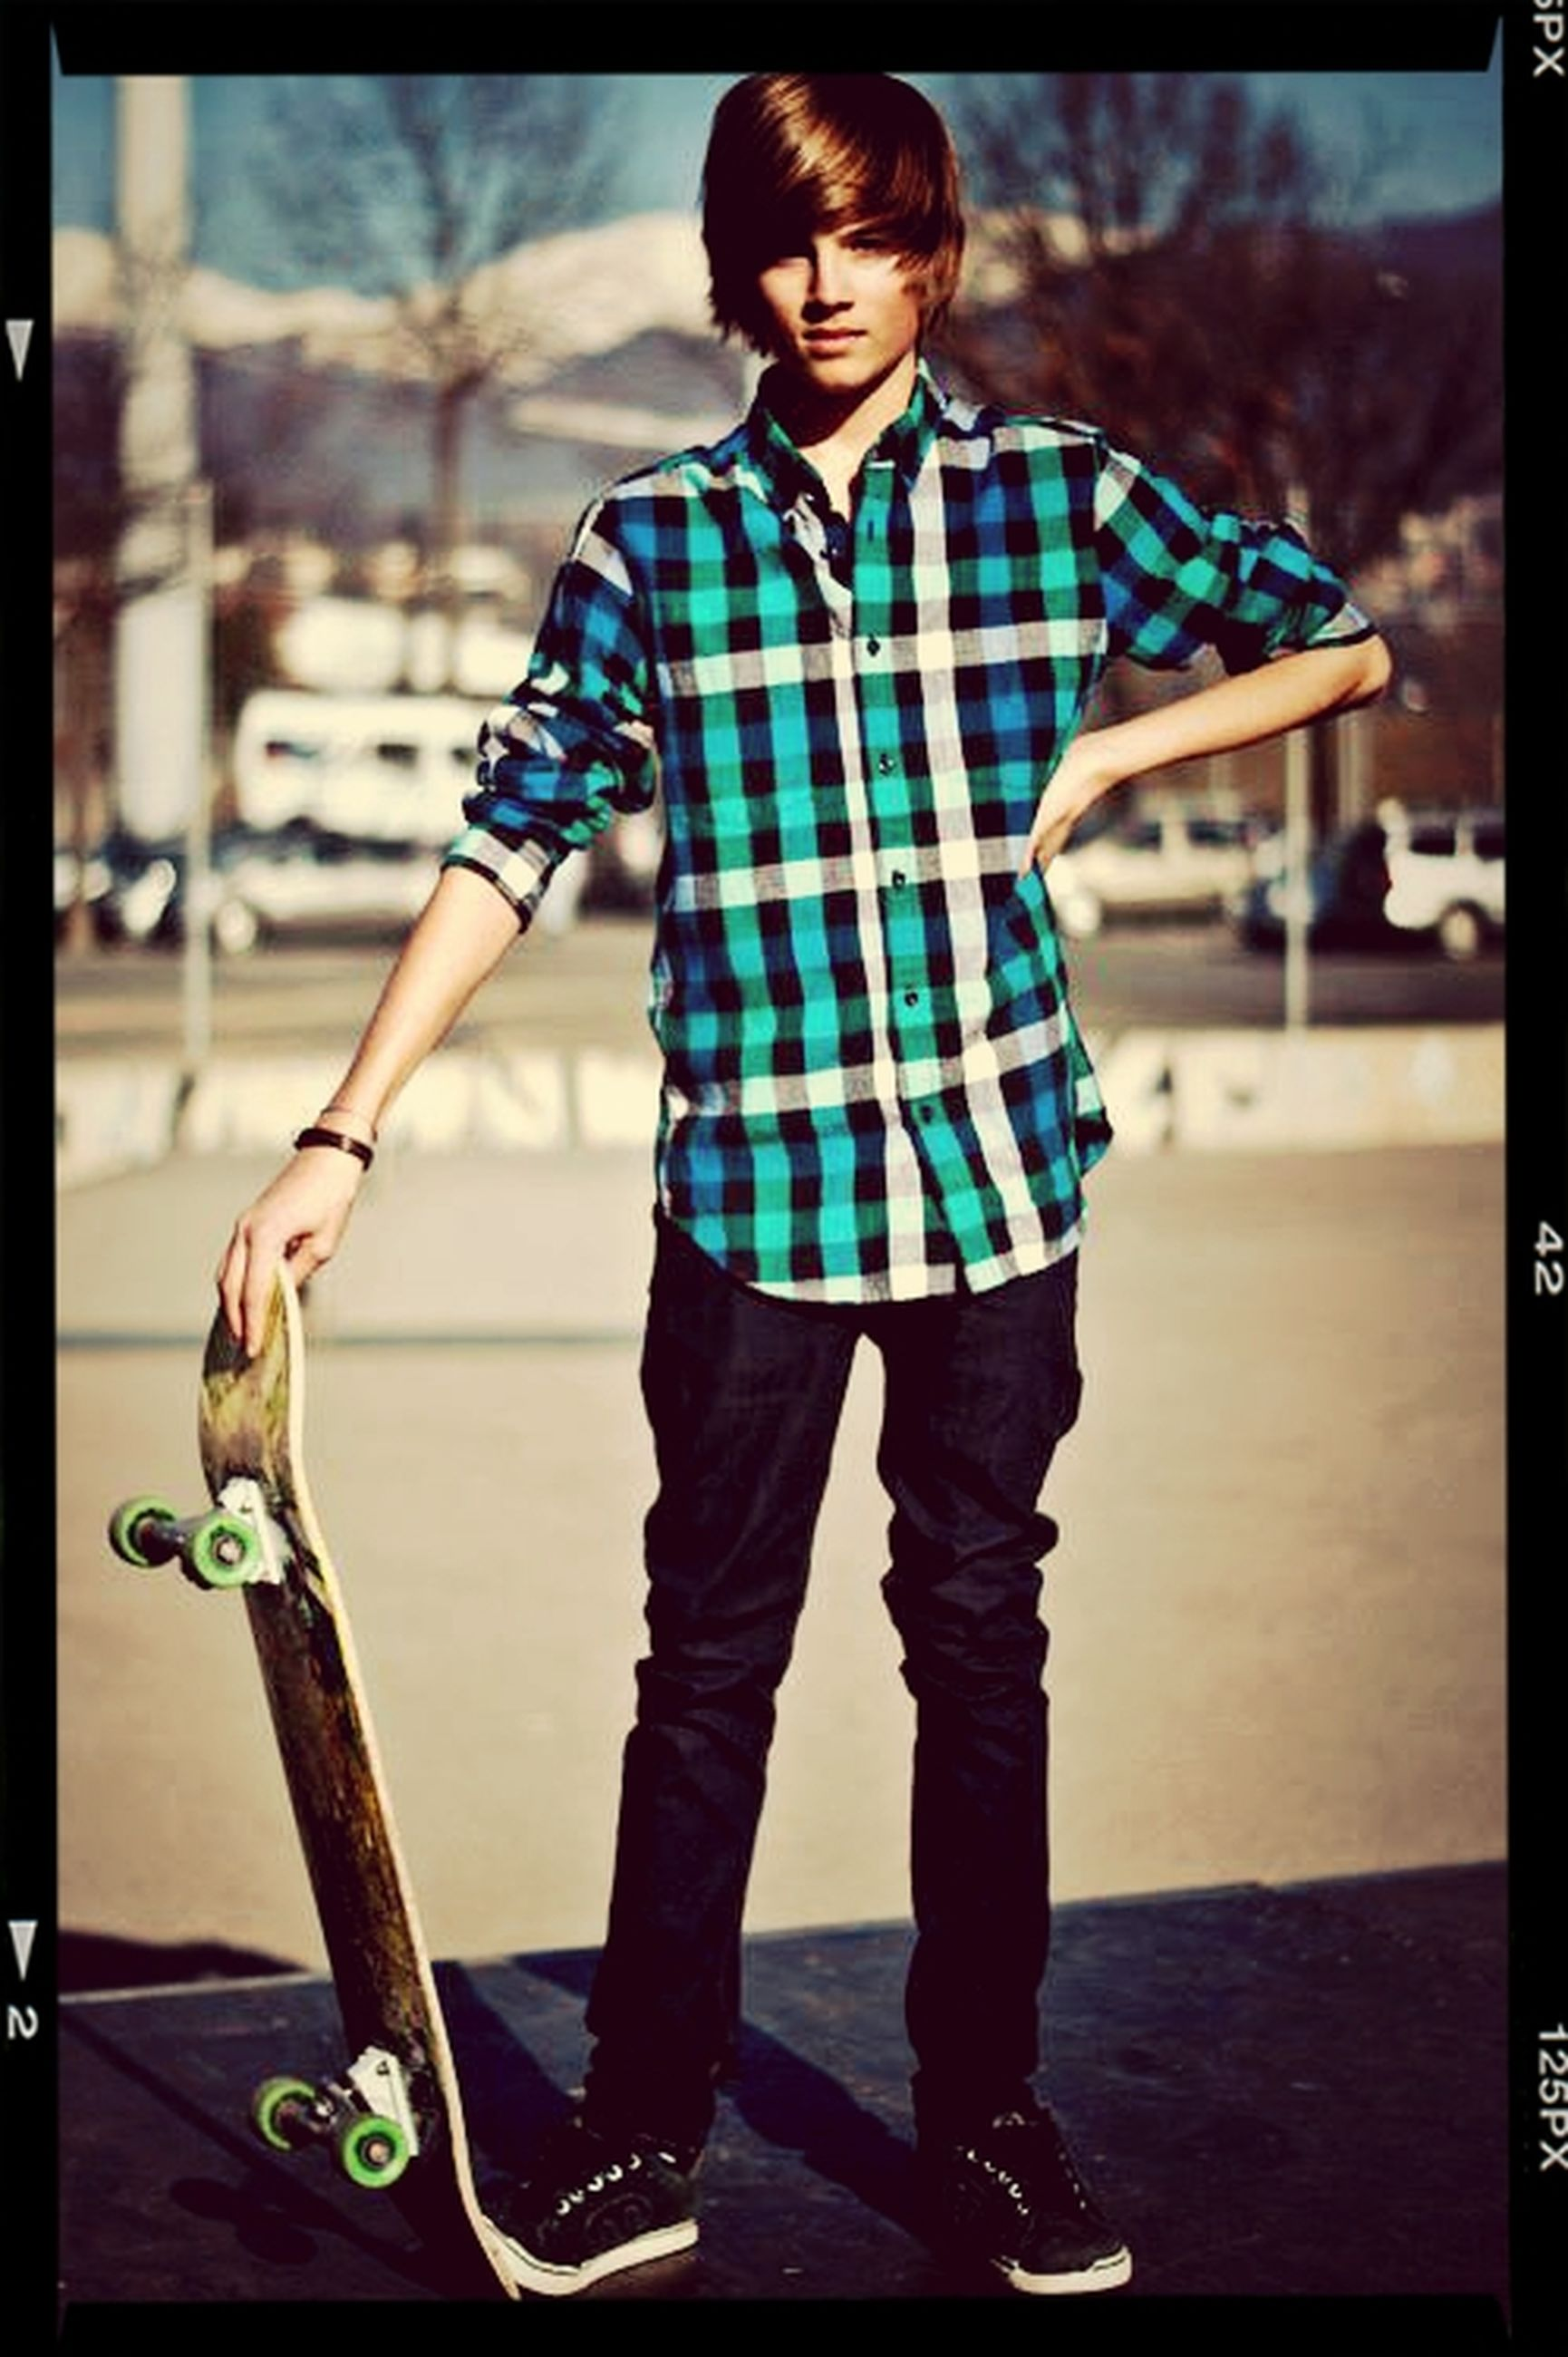 full length, casual clothing, childhood, lifestyles, elementary age, transfer print, boys, leisure activity, person, focus on foreground, girls, innocence, playing, standing, cute, auto post production filter, front view, playful